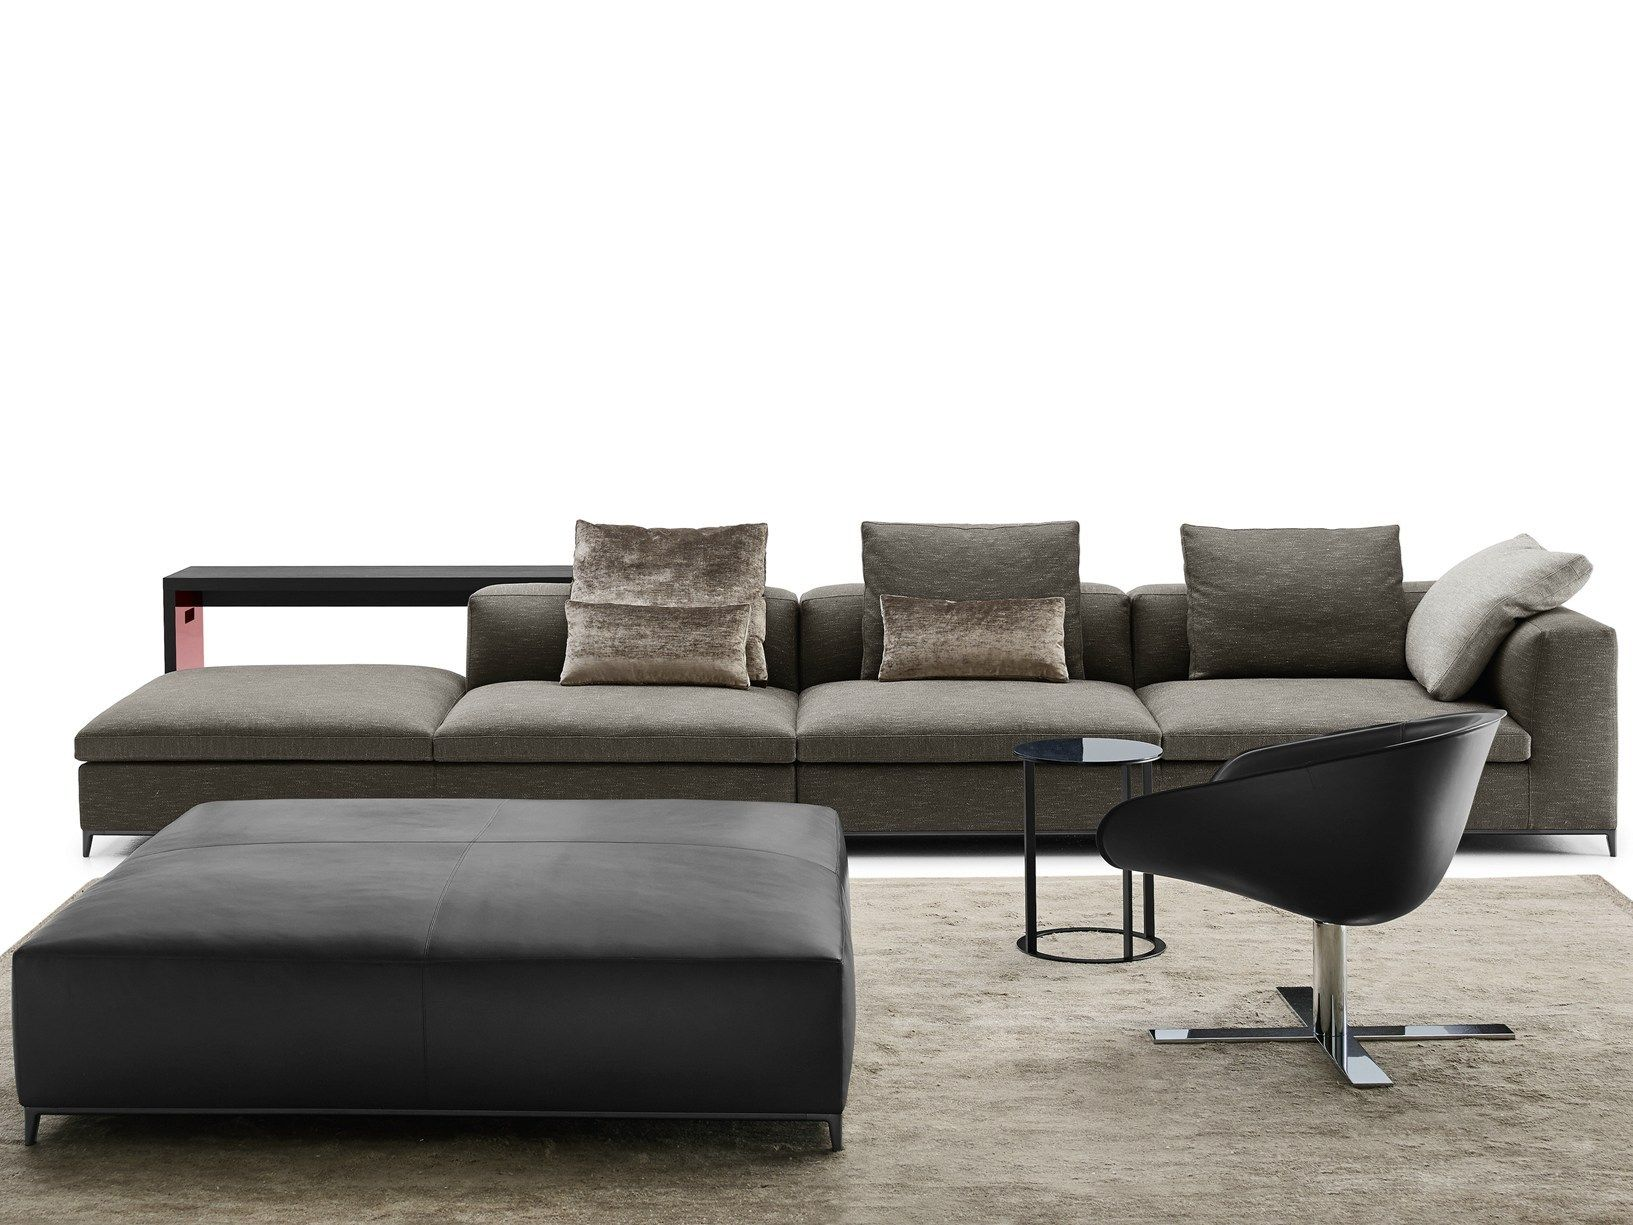 b b italia presents new proposals for living areas at imm cologne. Black Bedroom Furniture Sets. Home Design Ideas